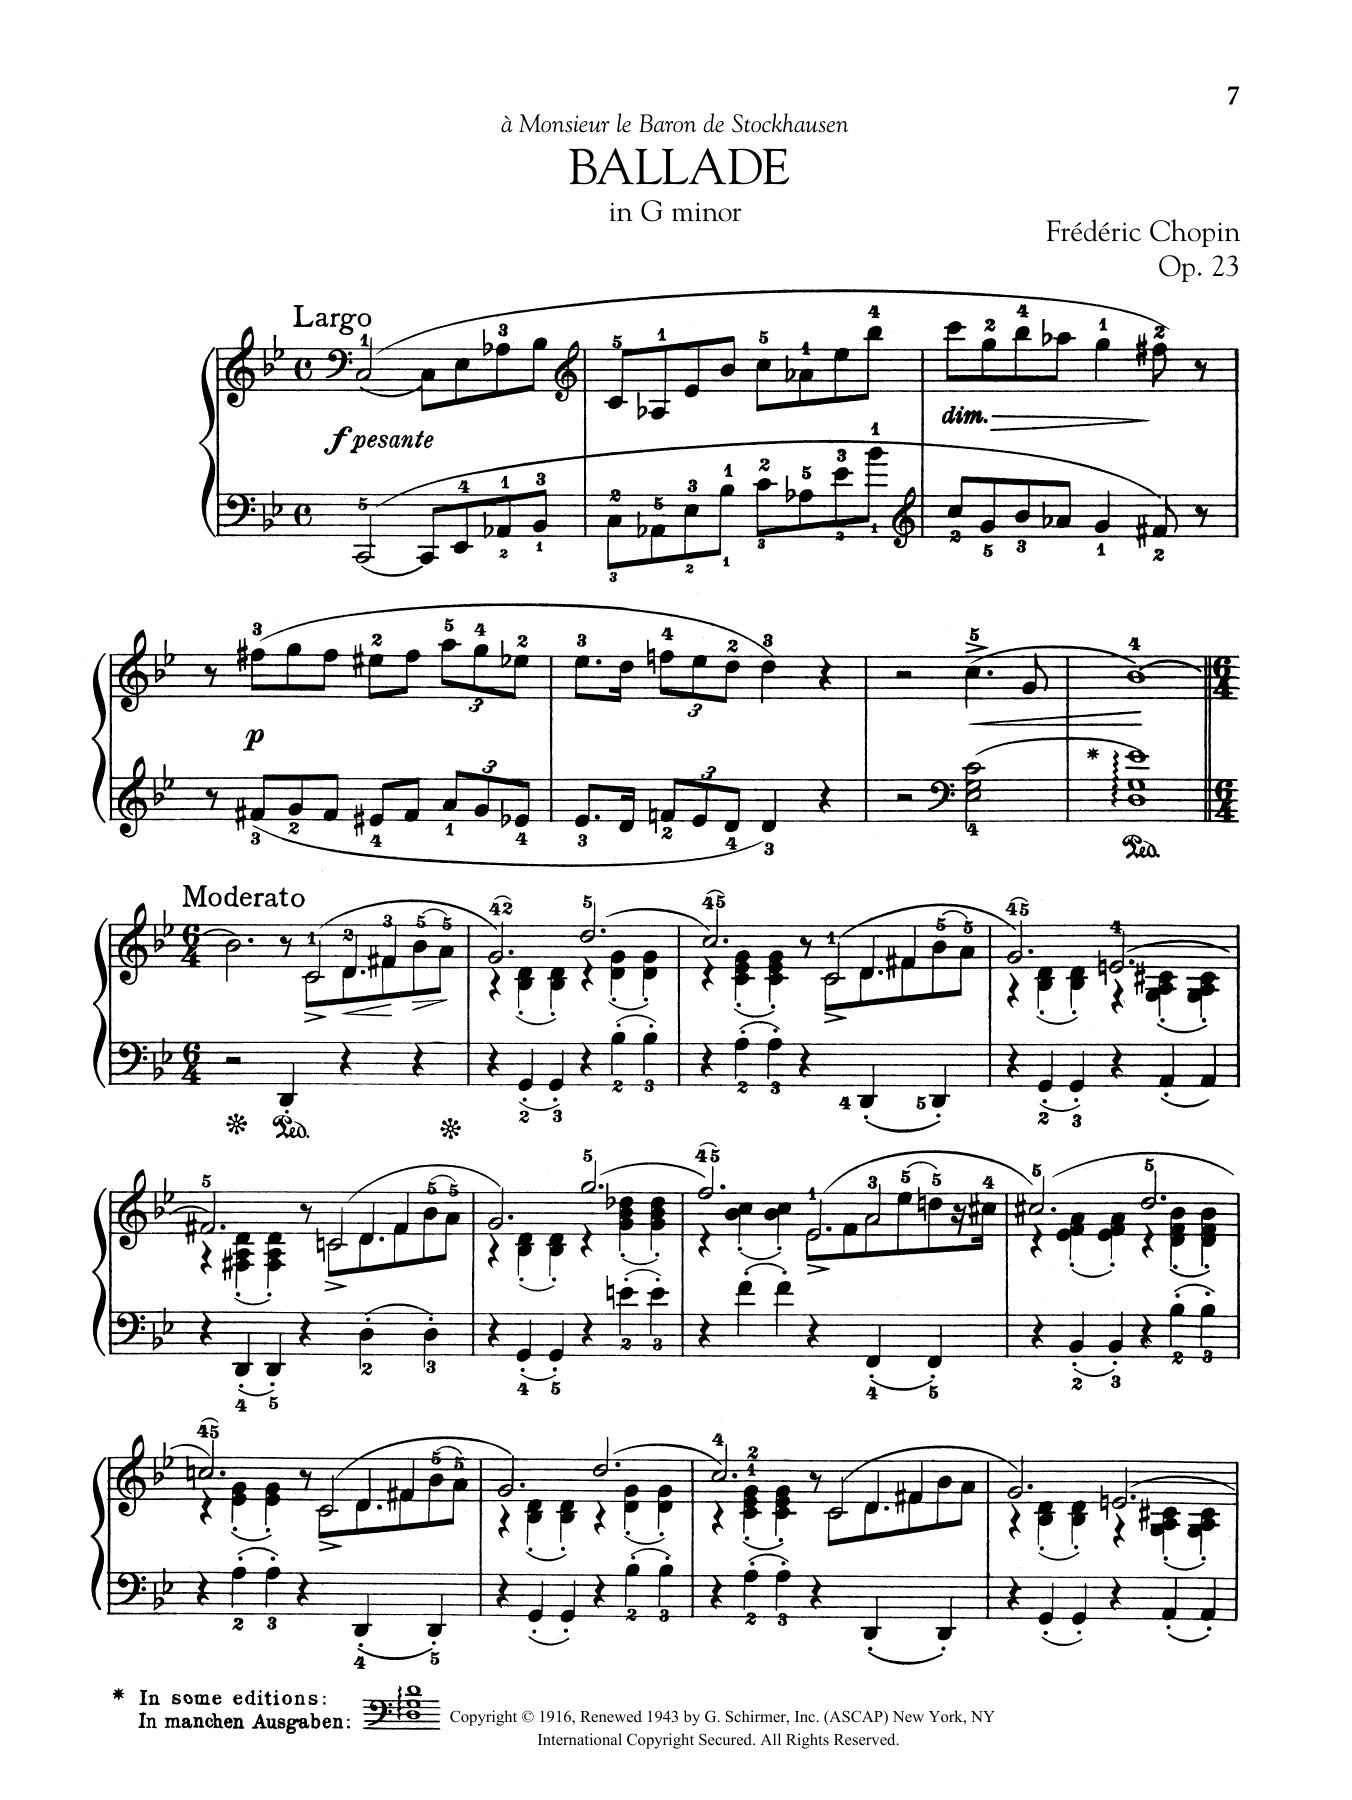 Ballade in G minor, Op. 23 Sheet Music